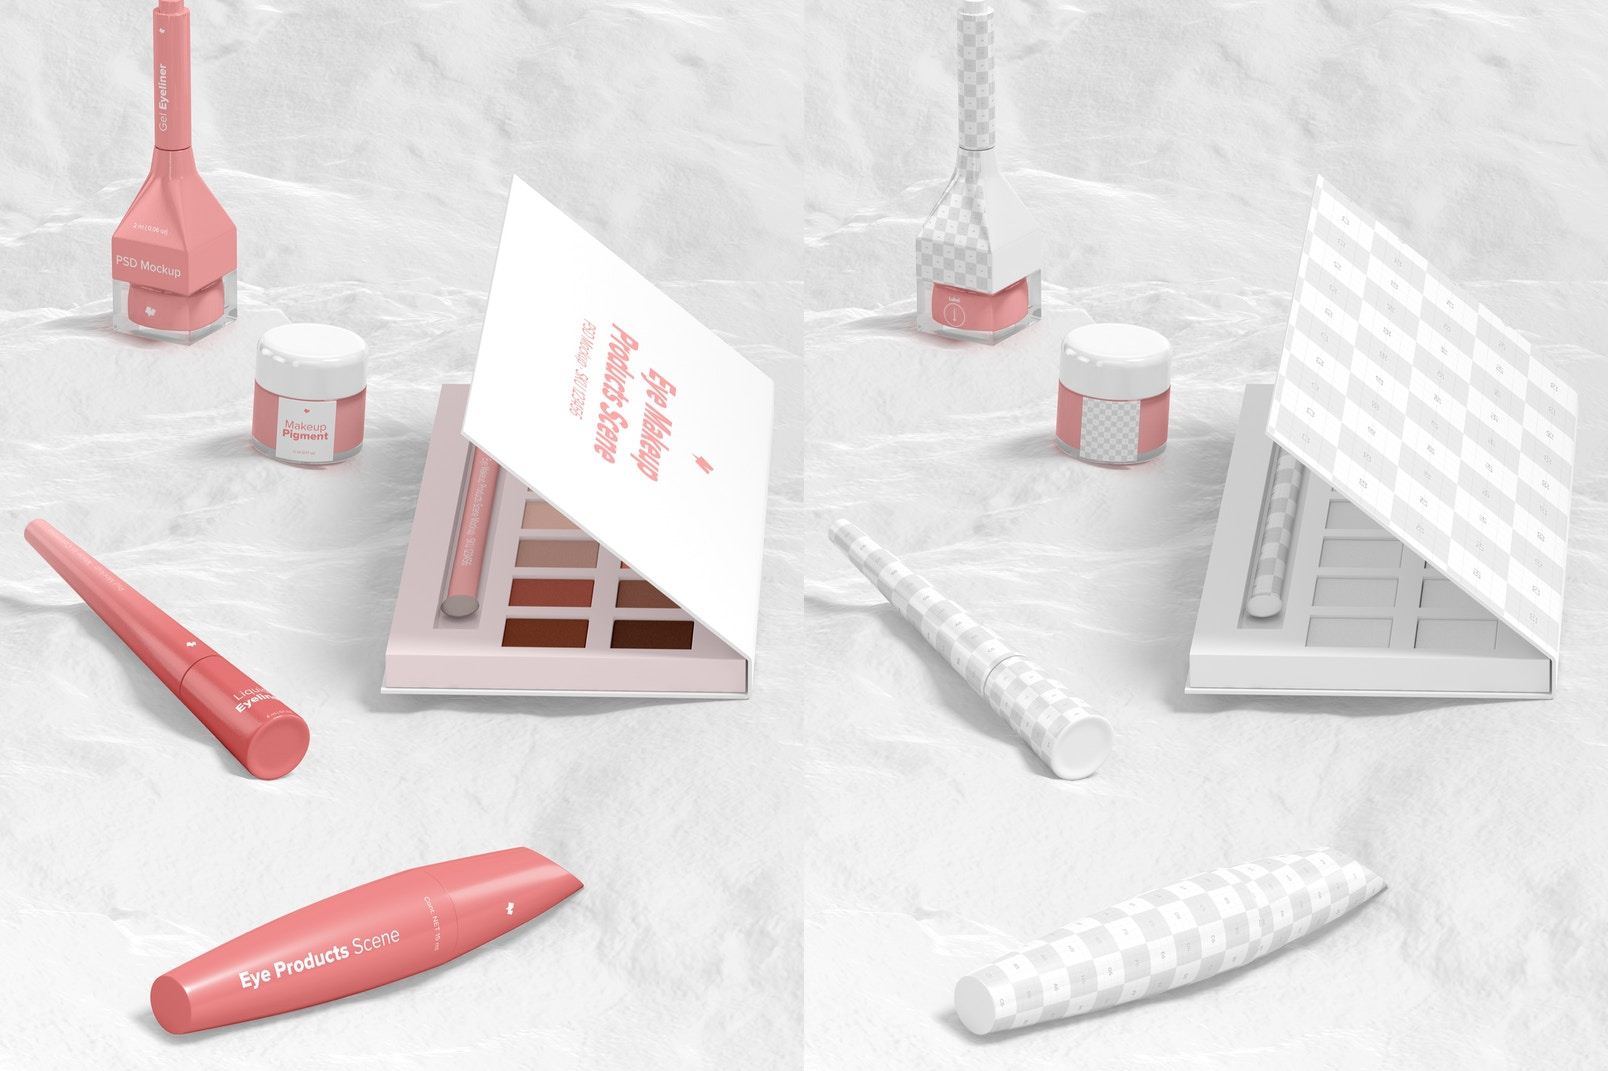 Eye Makeup Products Scene Mockup, Perspective View